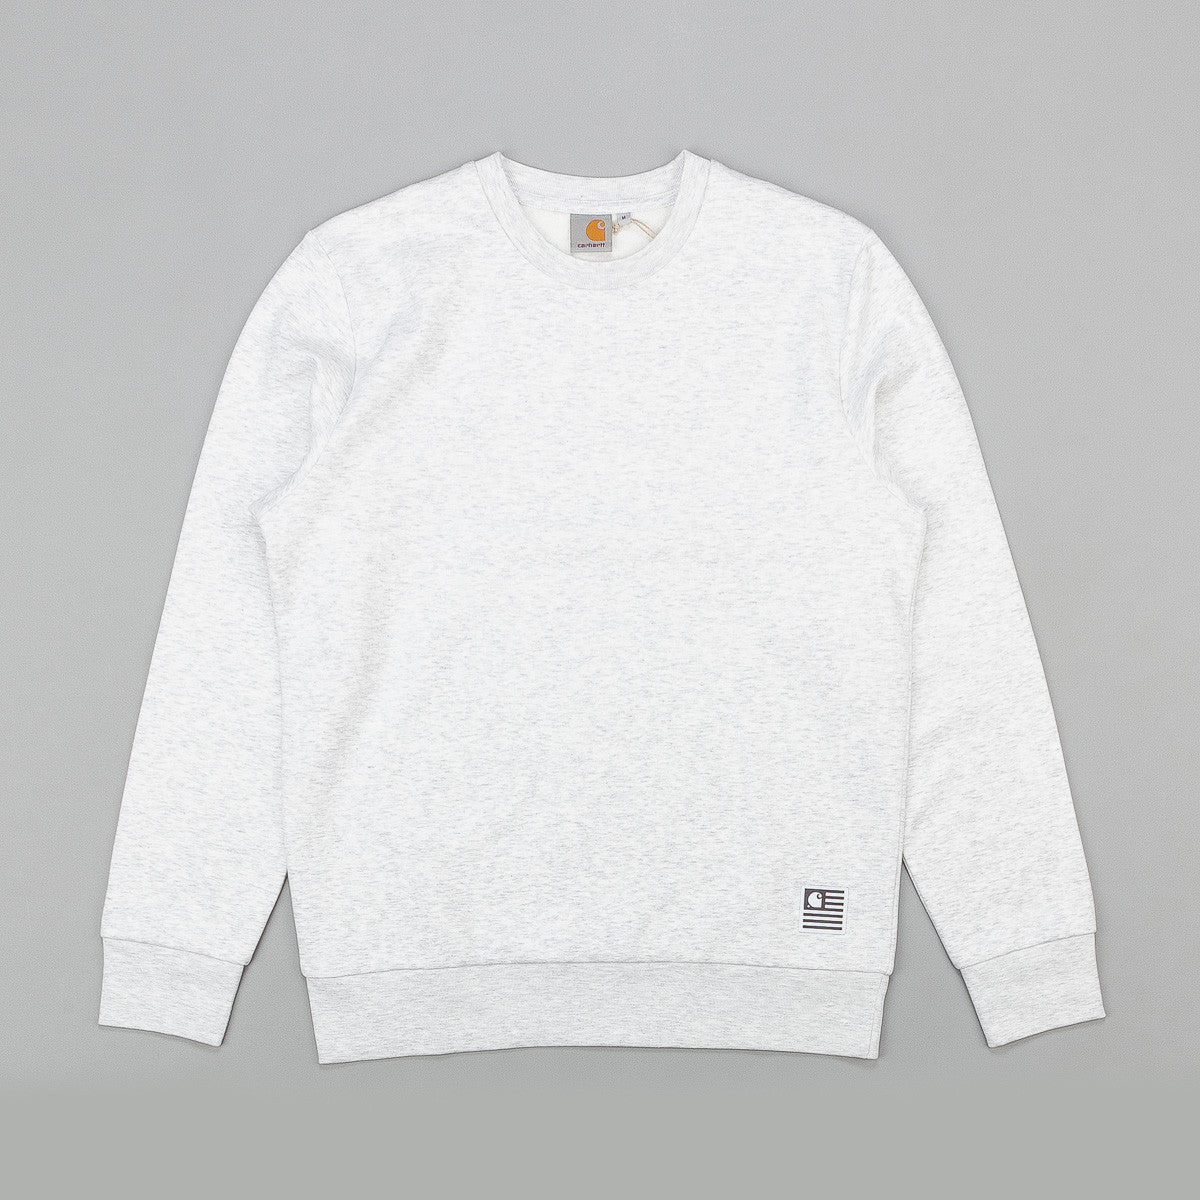 Carhartt State Flat Sweatshirt - Ash Heather / Black